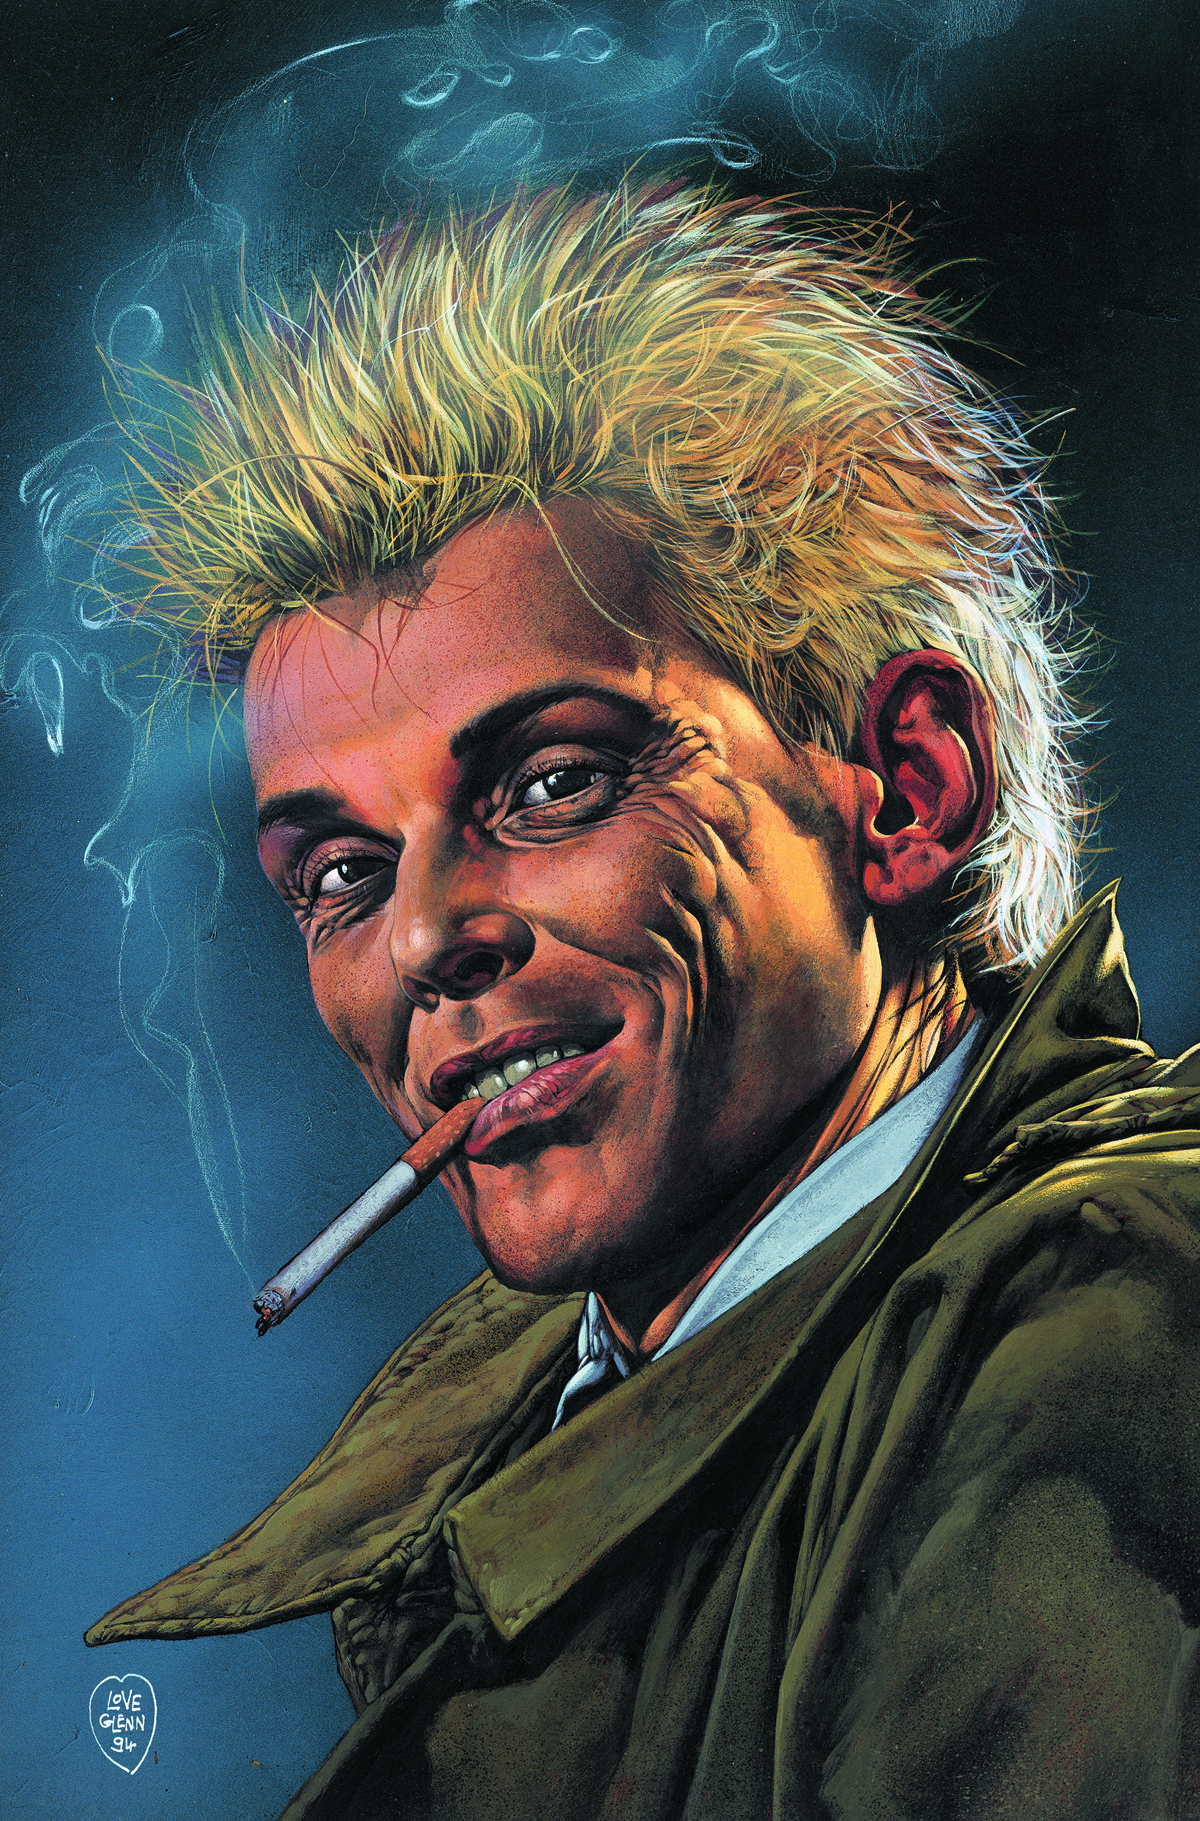 HELLBLAZER TP VOL 08 RAKE AT THE GATES OF HELL